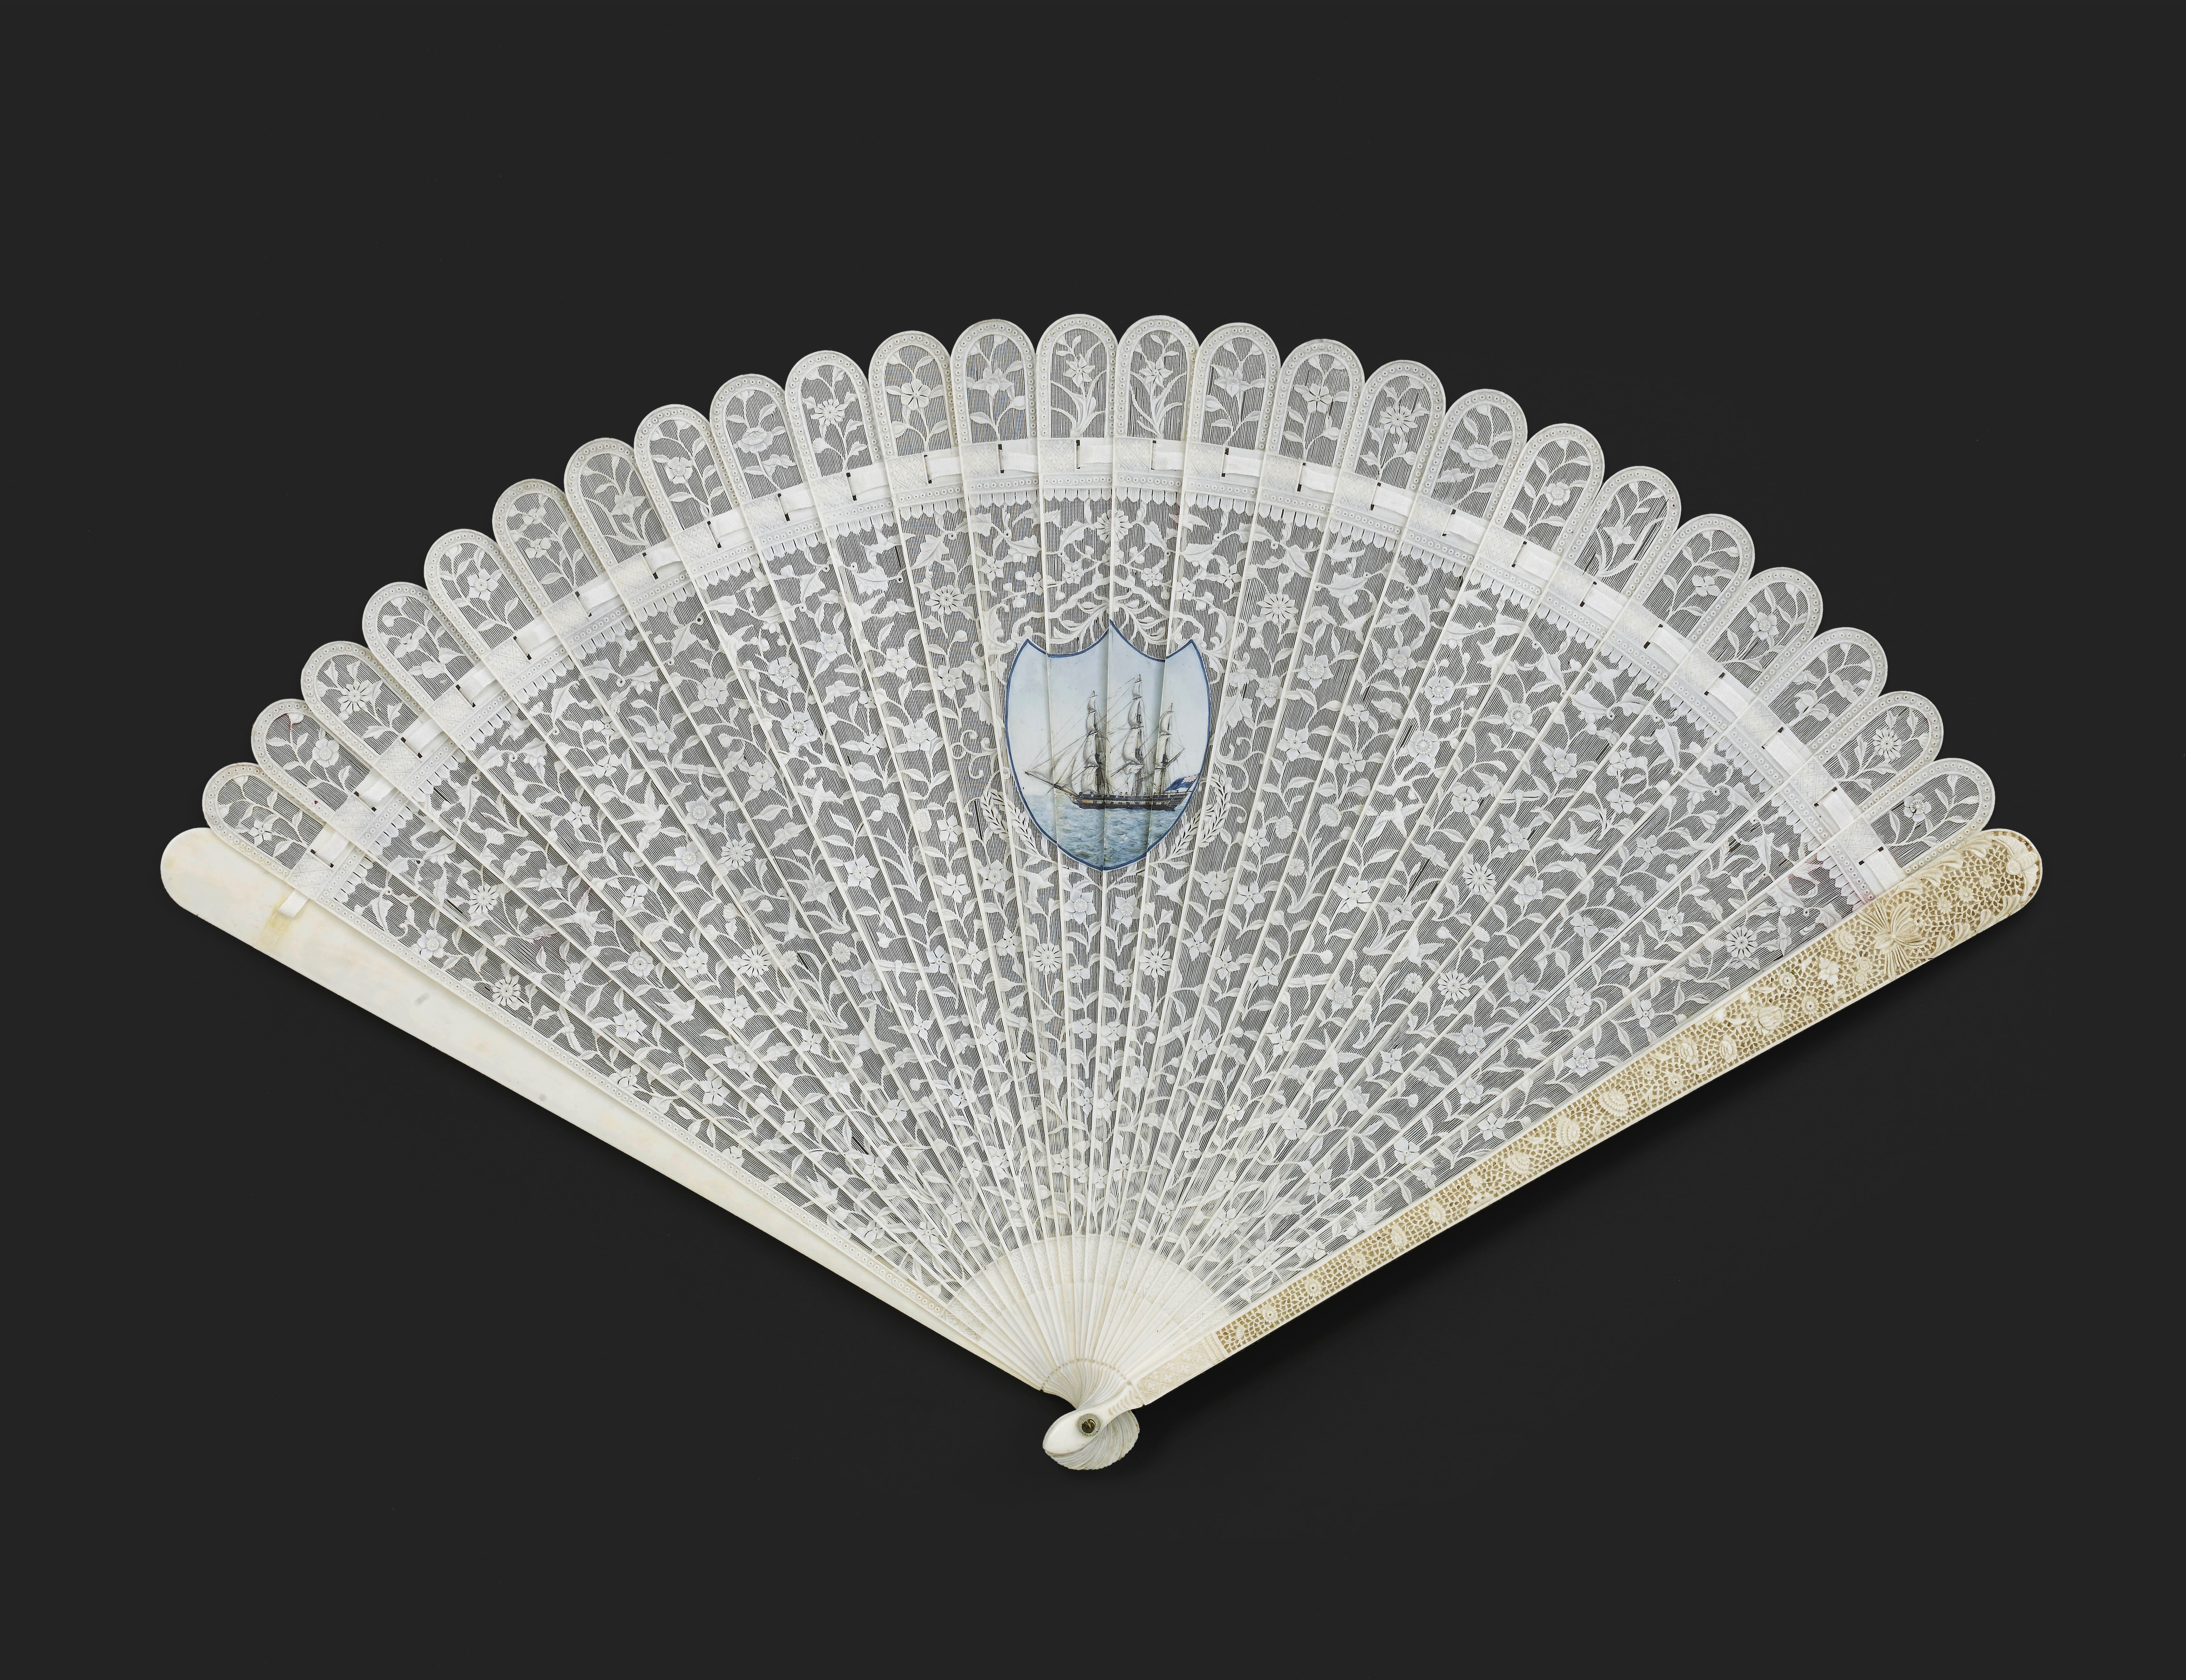 Lot 19 - A RARE CHINESE EXPORT IVORY BRISE FAN, QING DYNASTY, QIANLONG PERIOD, CIRCA 1780